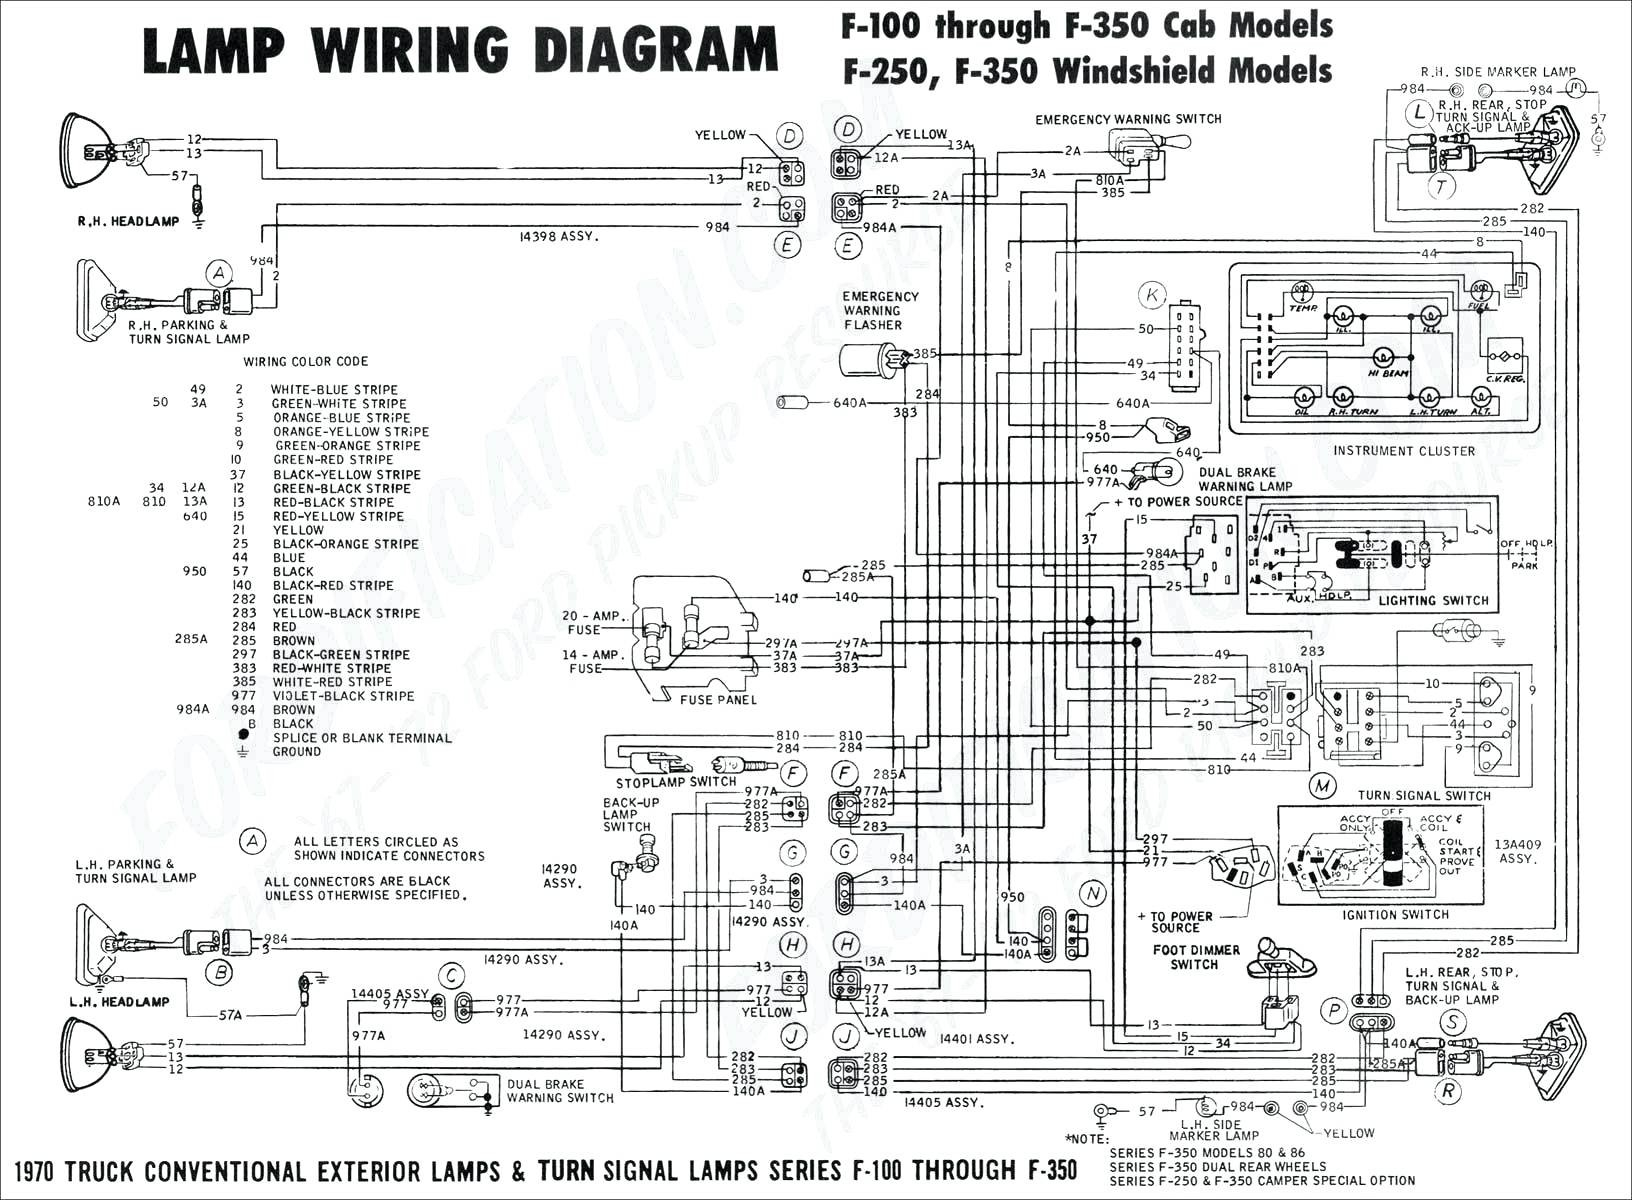 2015 mustang wiring diagram download